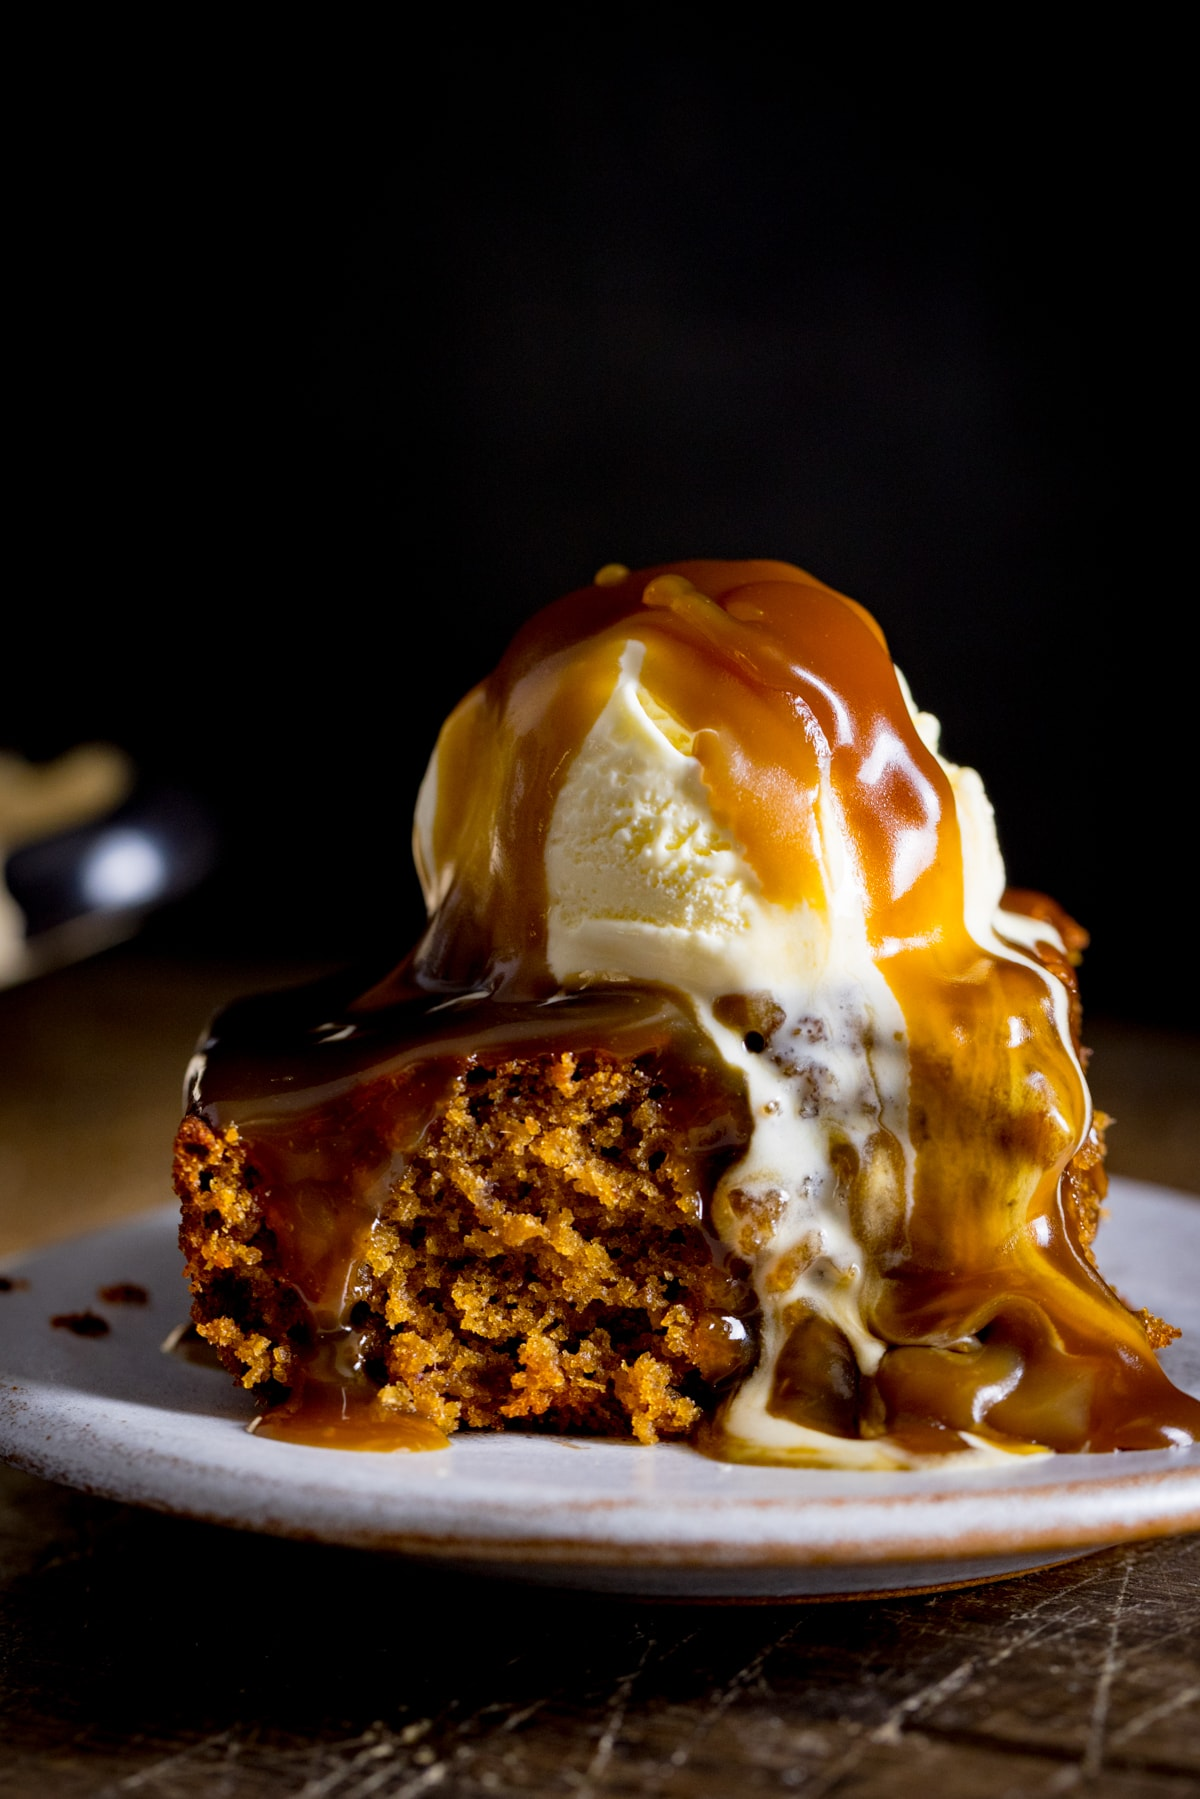 A piece of sticky toffee pudding on a white plate, topped with ice cream and toffee sauce against a dark background.